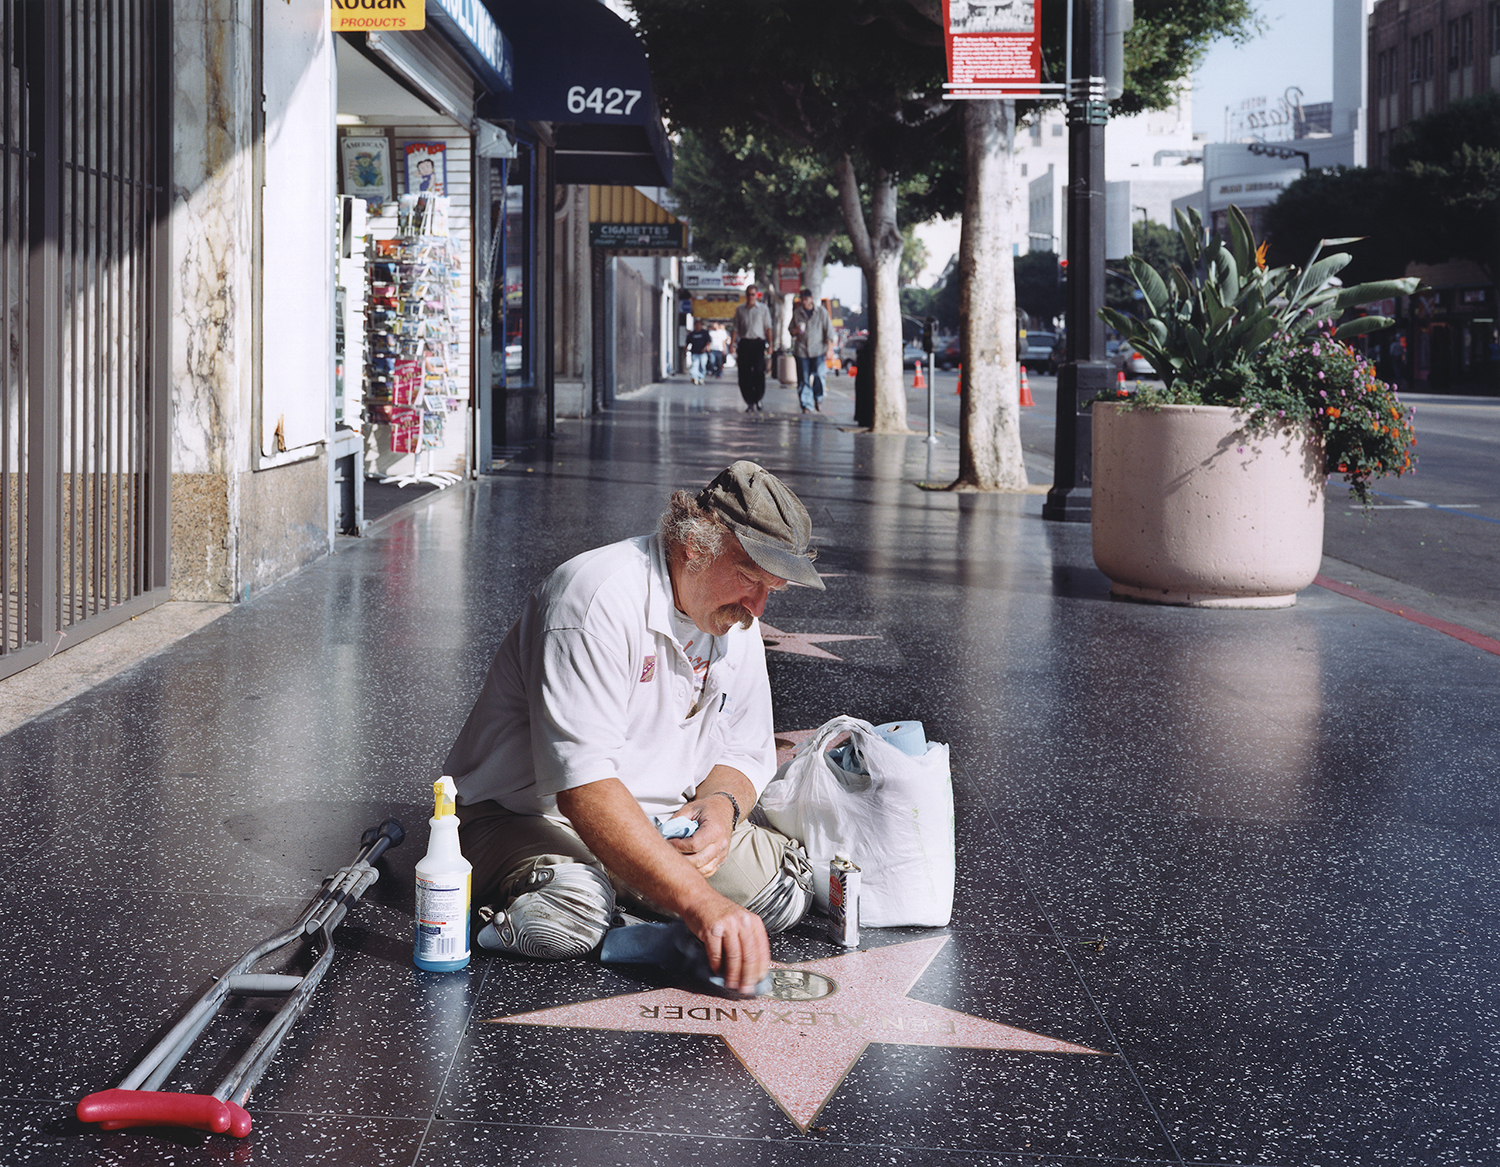 Legless Star Cleaner on the Hollywood Walk of Fame, 2005 ©Juliana Sohn